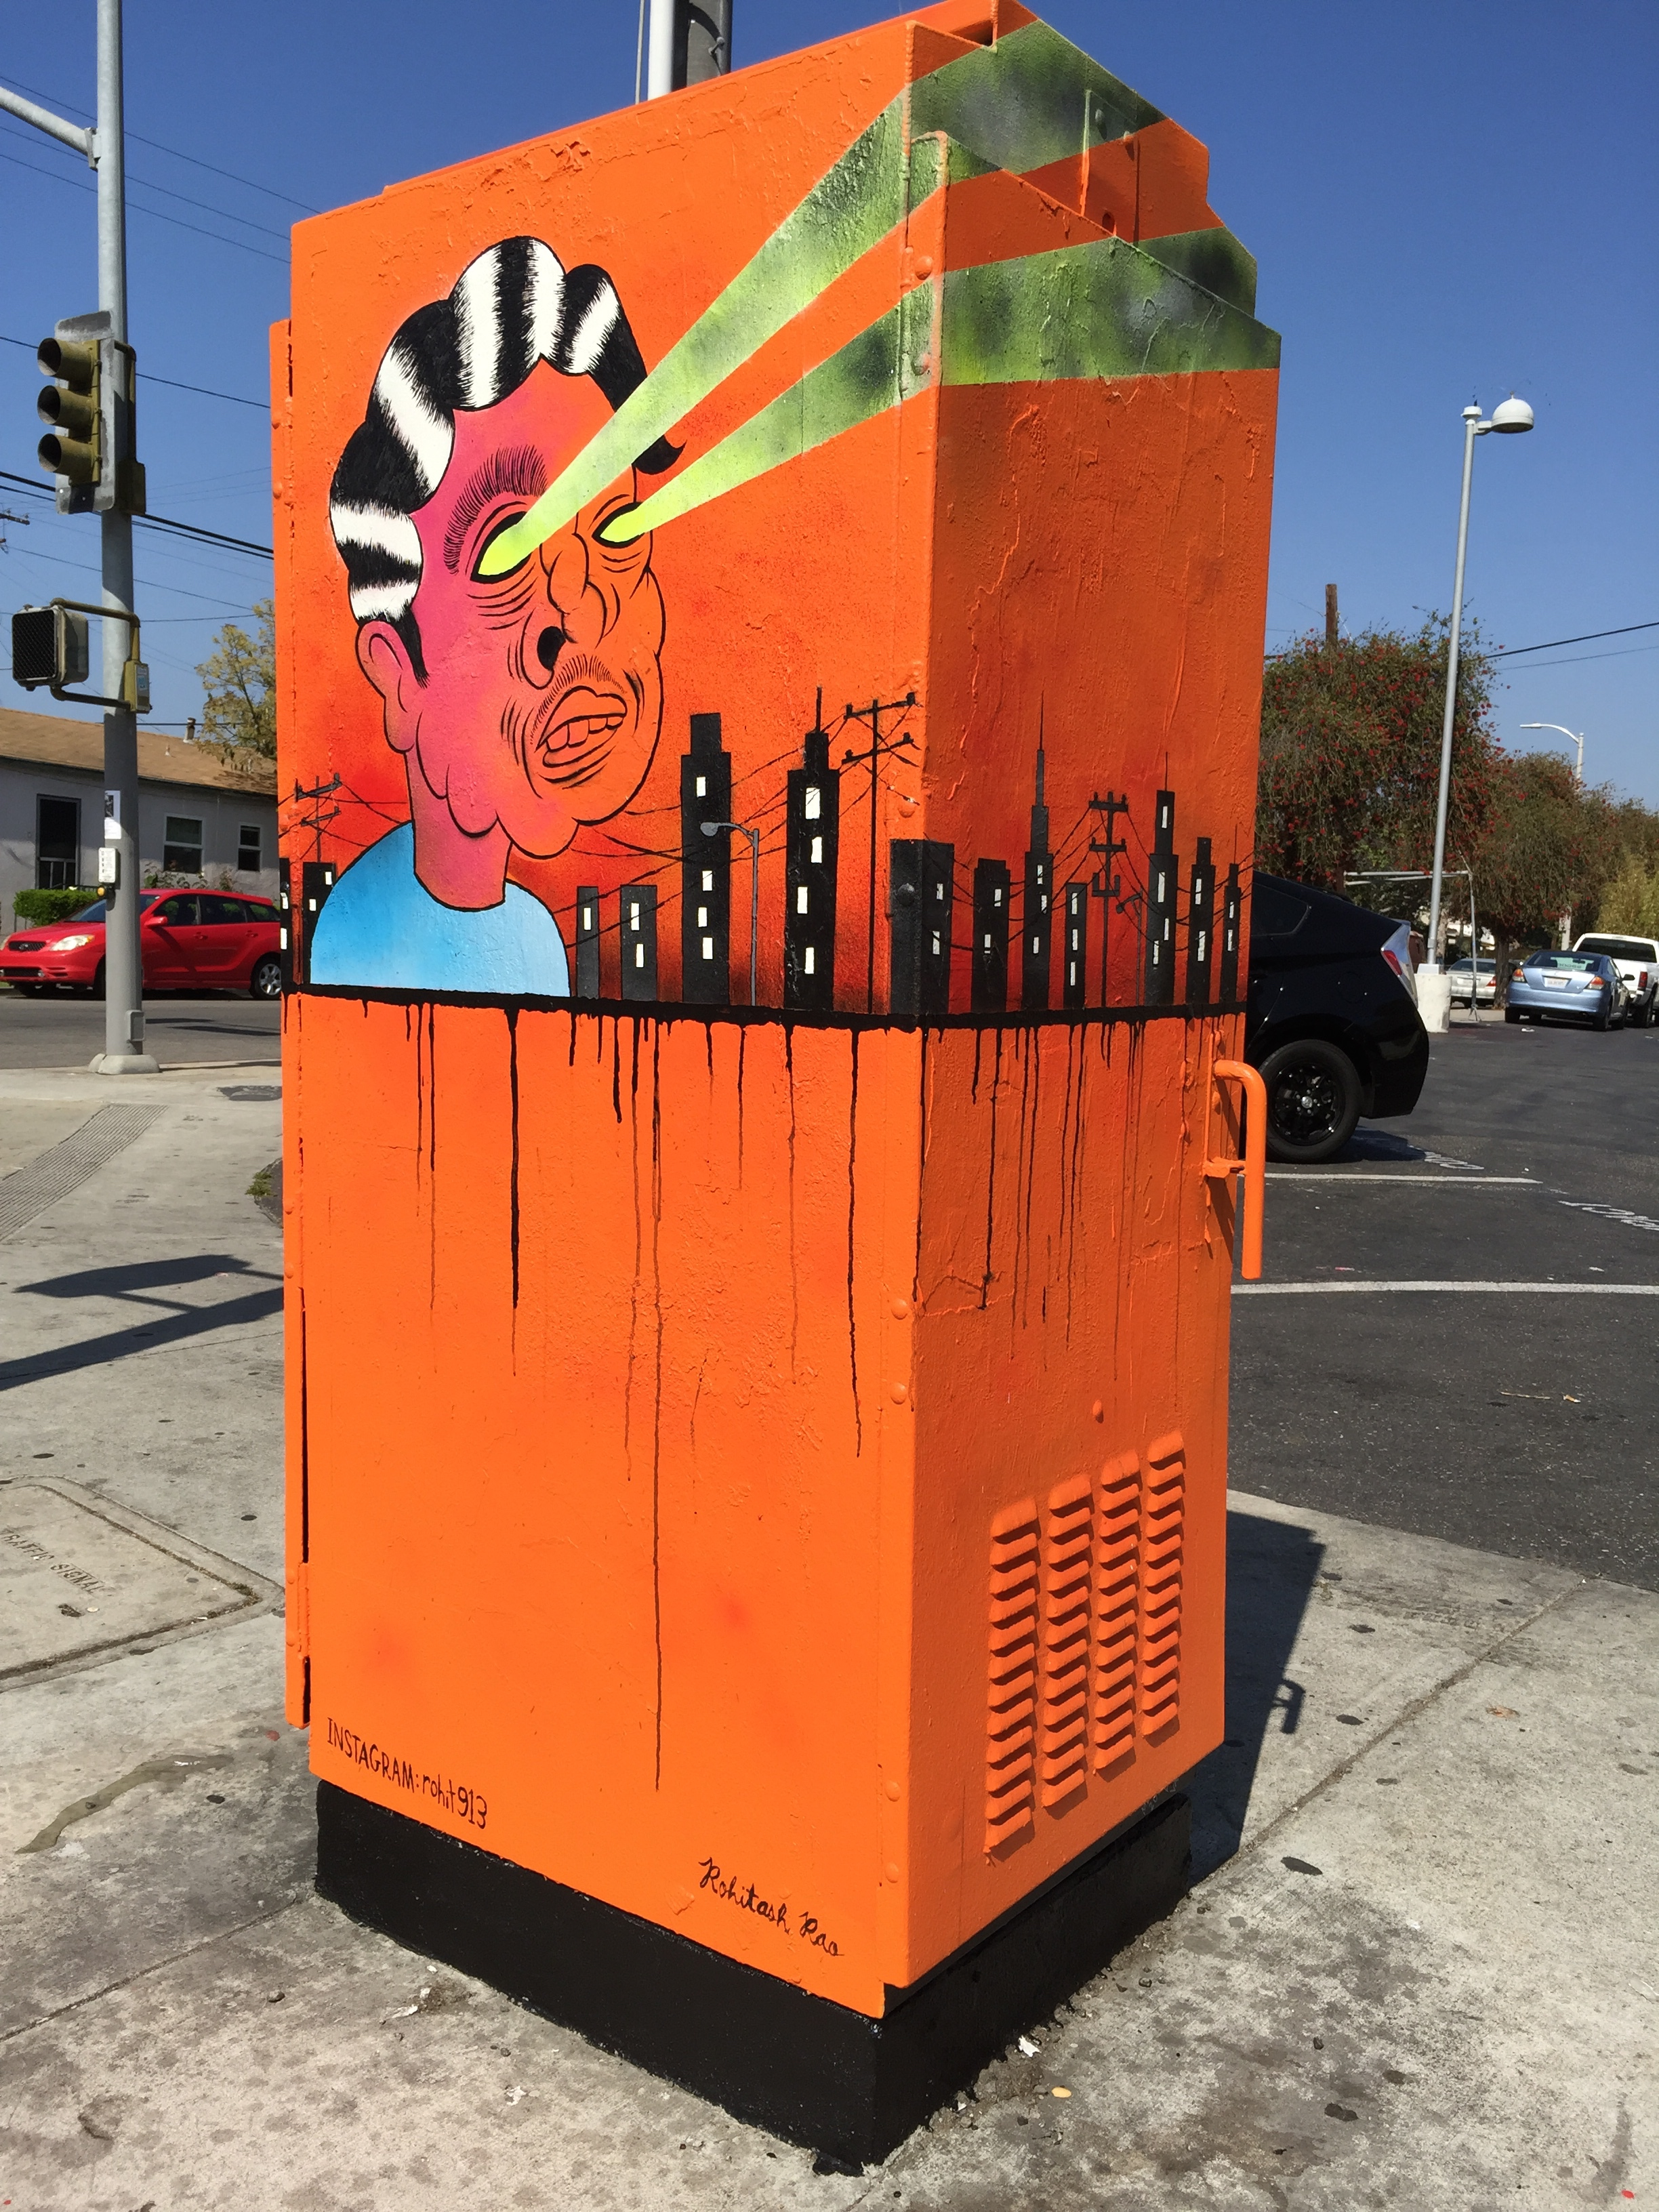 POWER BOX MURAL